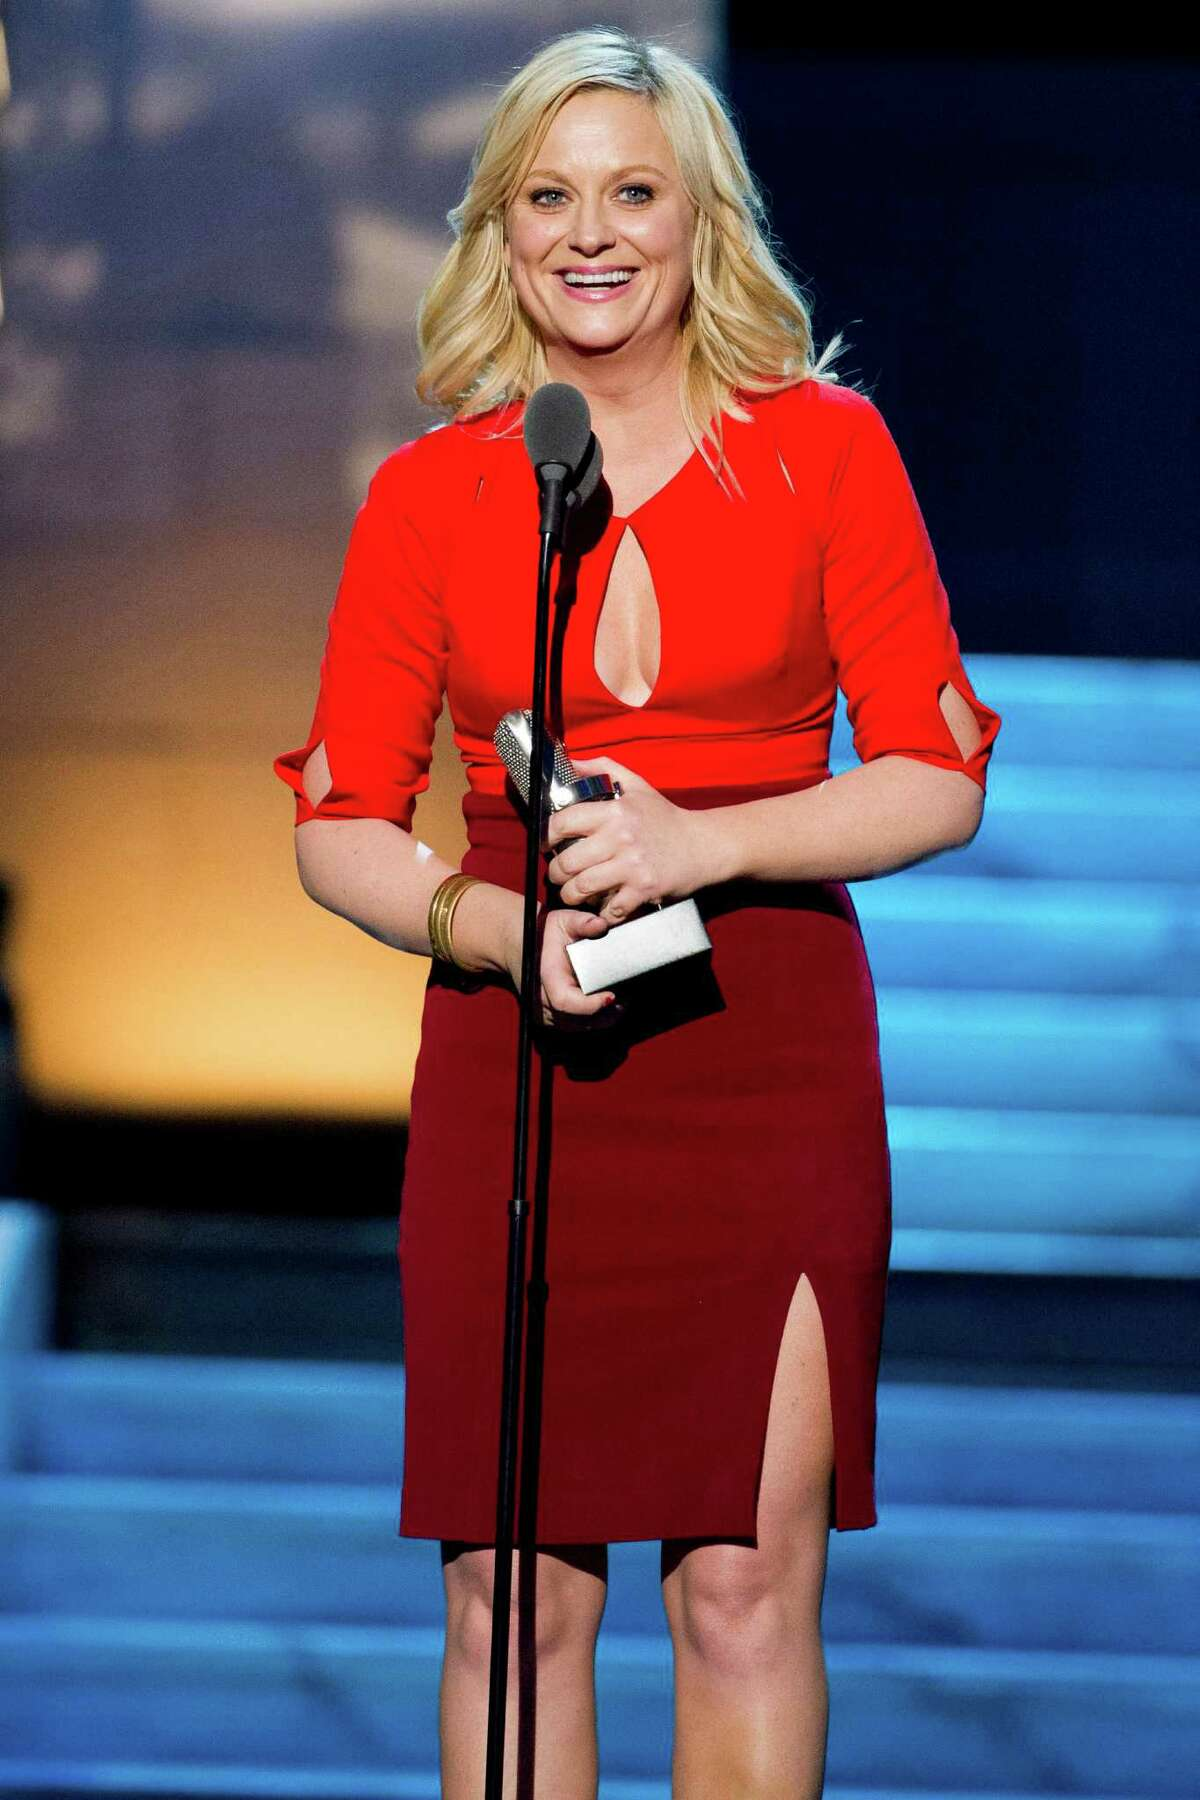 Amy Poehler accepts the best actress award at The 2012 Comedy Awards in New York, Saturday, April 28, 2012.